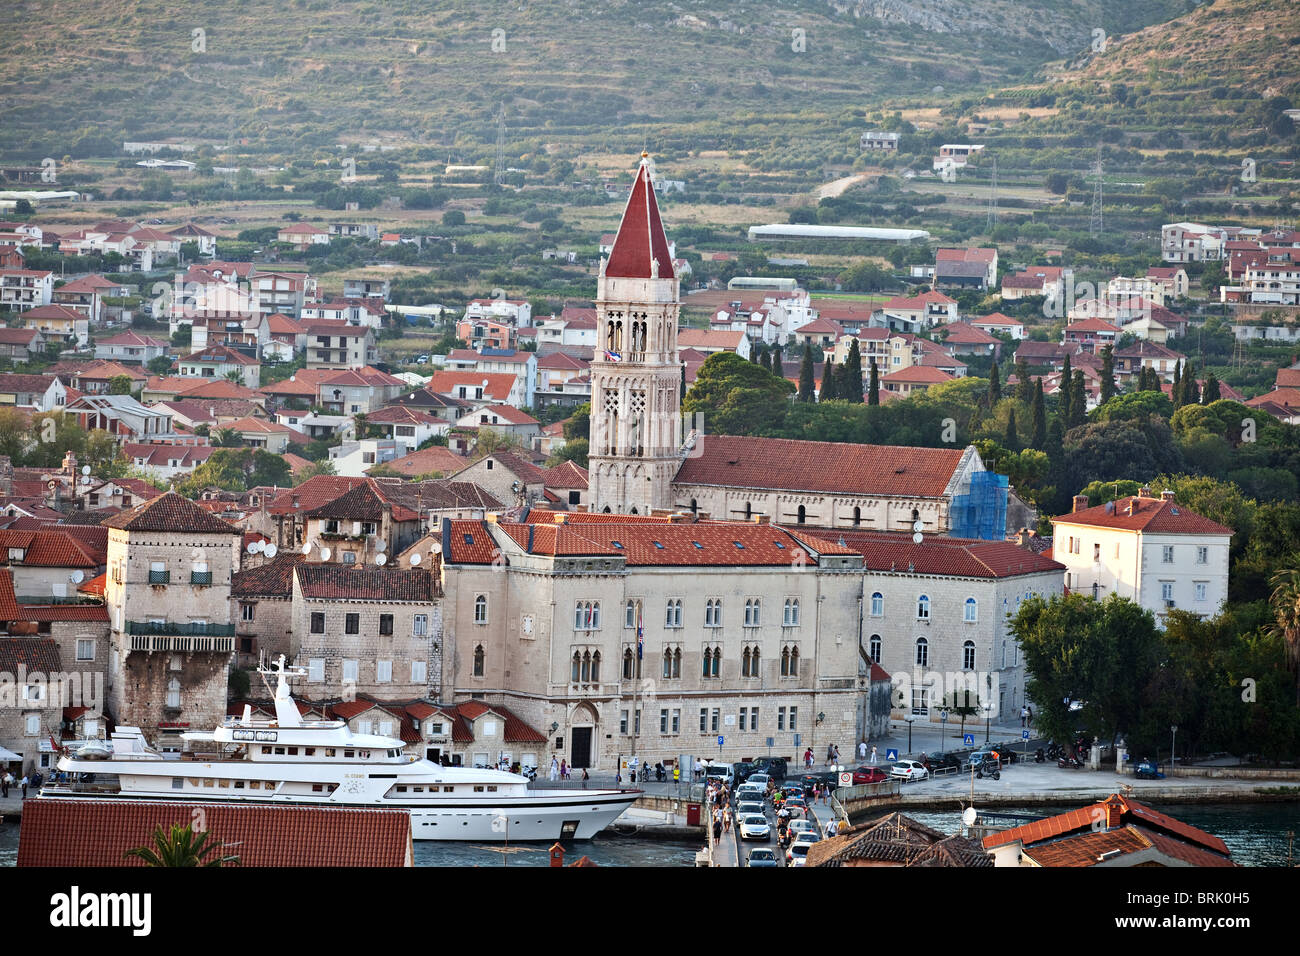 Old town of Trogir Cathedral of St. Lawrence in the middle, Dalmatian coast, Croatia Stock Photo